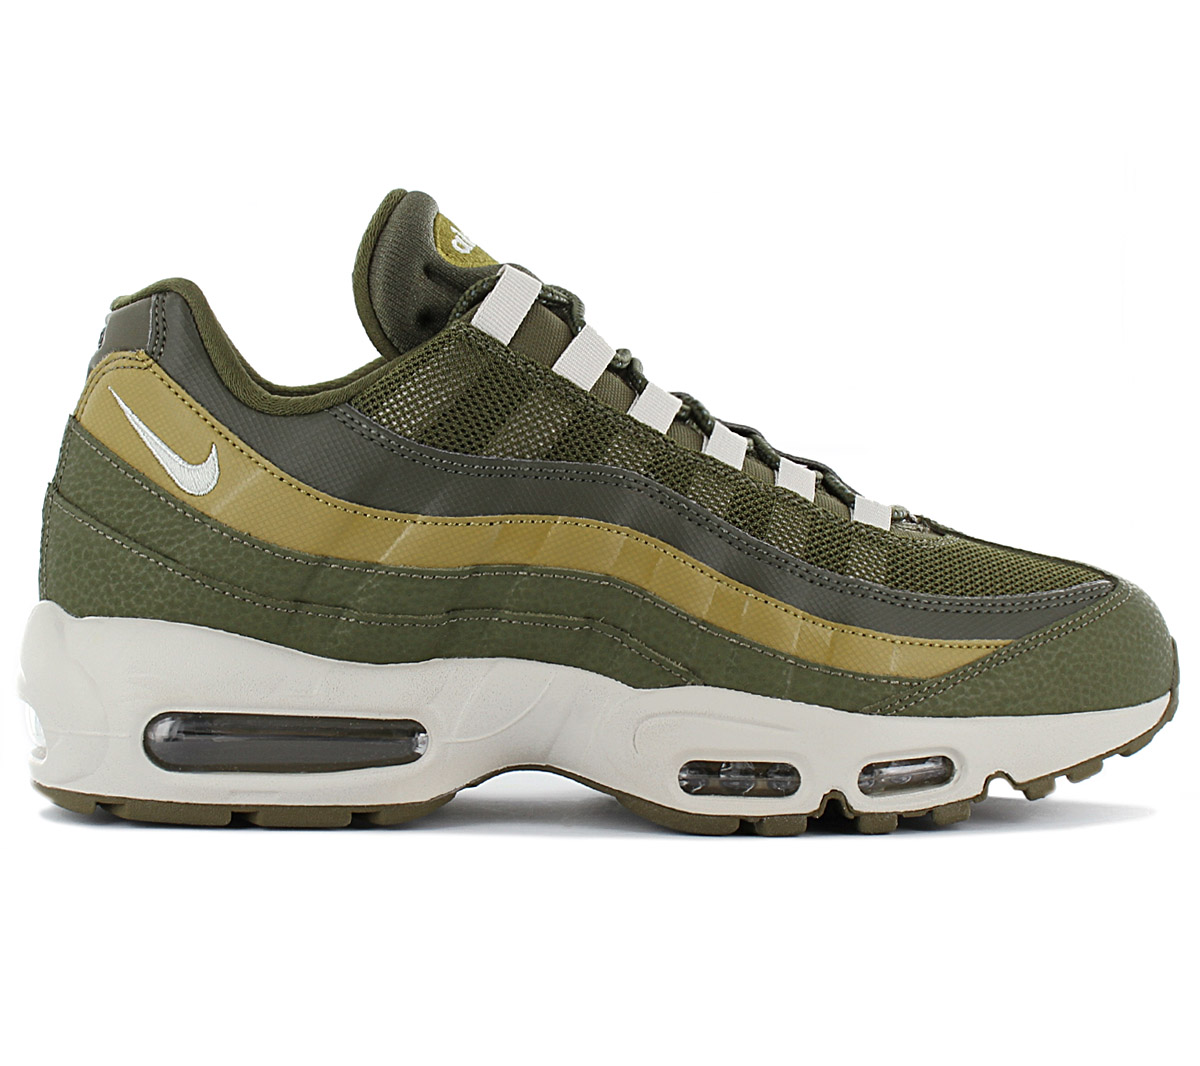 new style a90a3 bf354 Details about Nike air max 95 Essential Men's Sneaker Shoes 749766-303  Olive Green Trainers